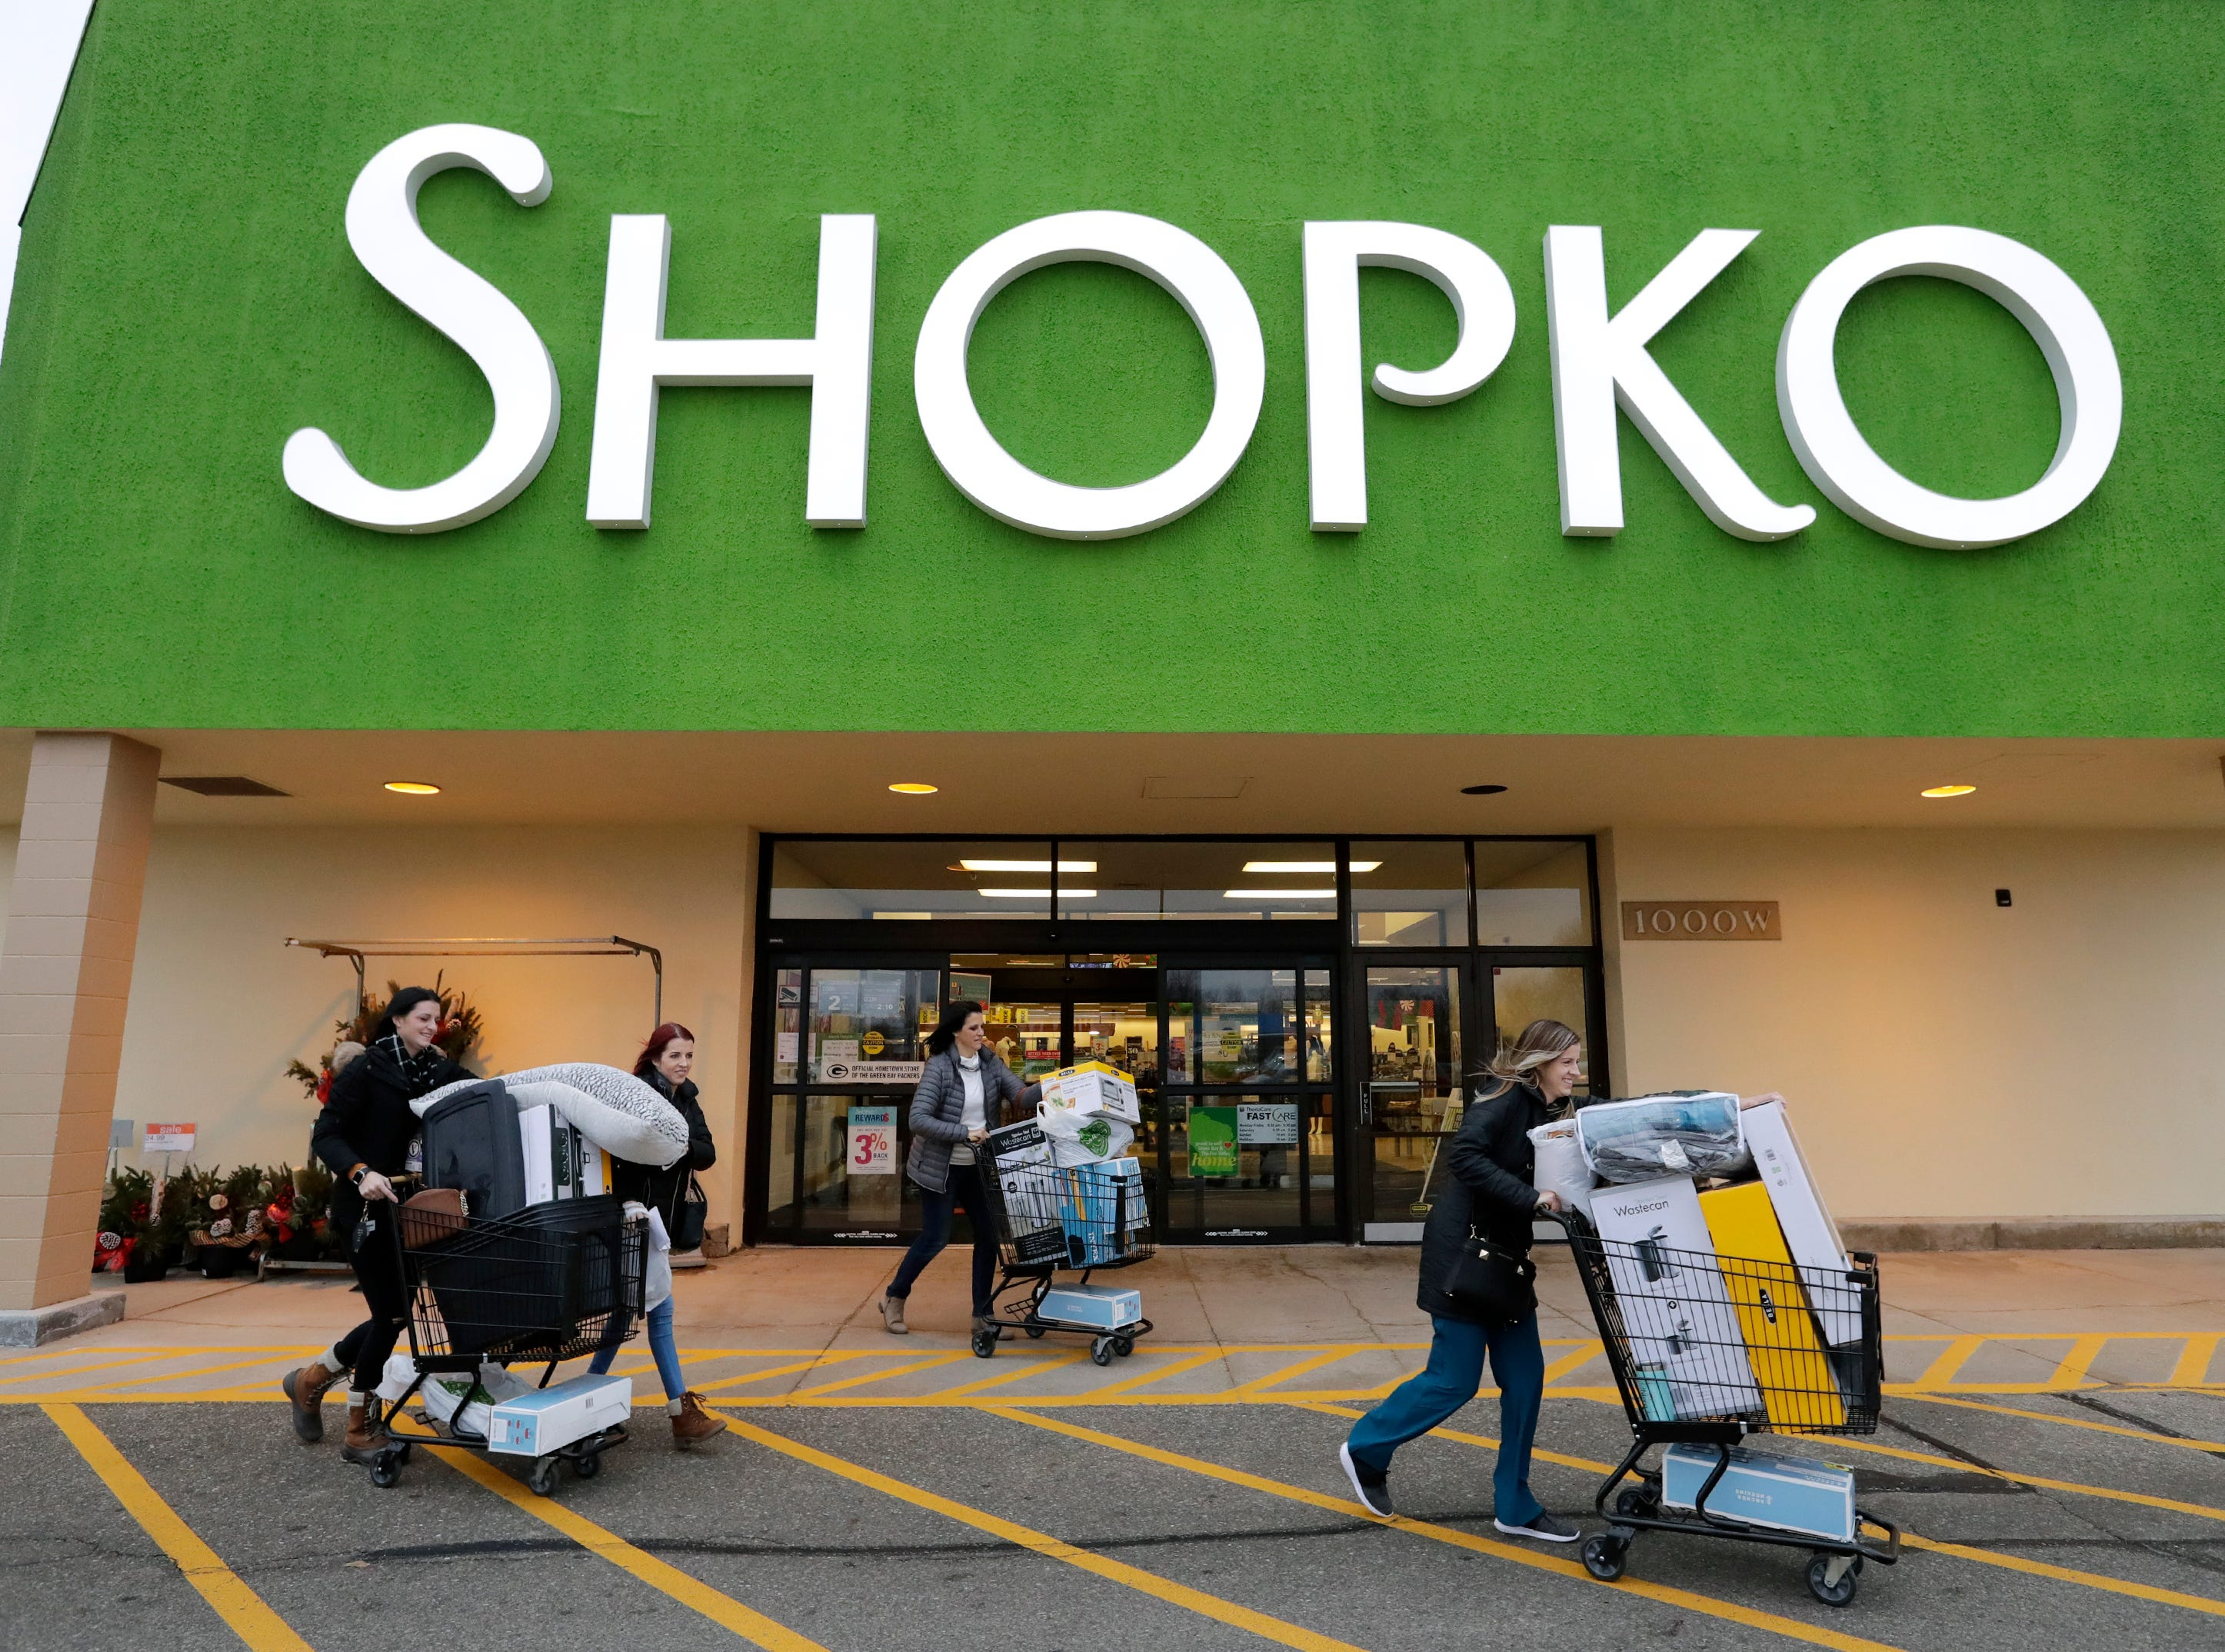 Kayla Williams, left, of Neenah is loaded down with Black Friday specials as she heads to her vehicle with her sister Kendra Miller of Appleton, mother Kelly Miller of Appleton and other sister Kiera Miller, right, of Appleton Thursday, November 22, 2018, at Shopko in Appleton, Wis. 